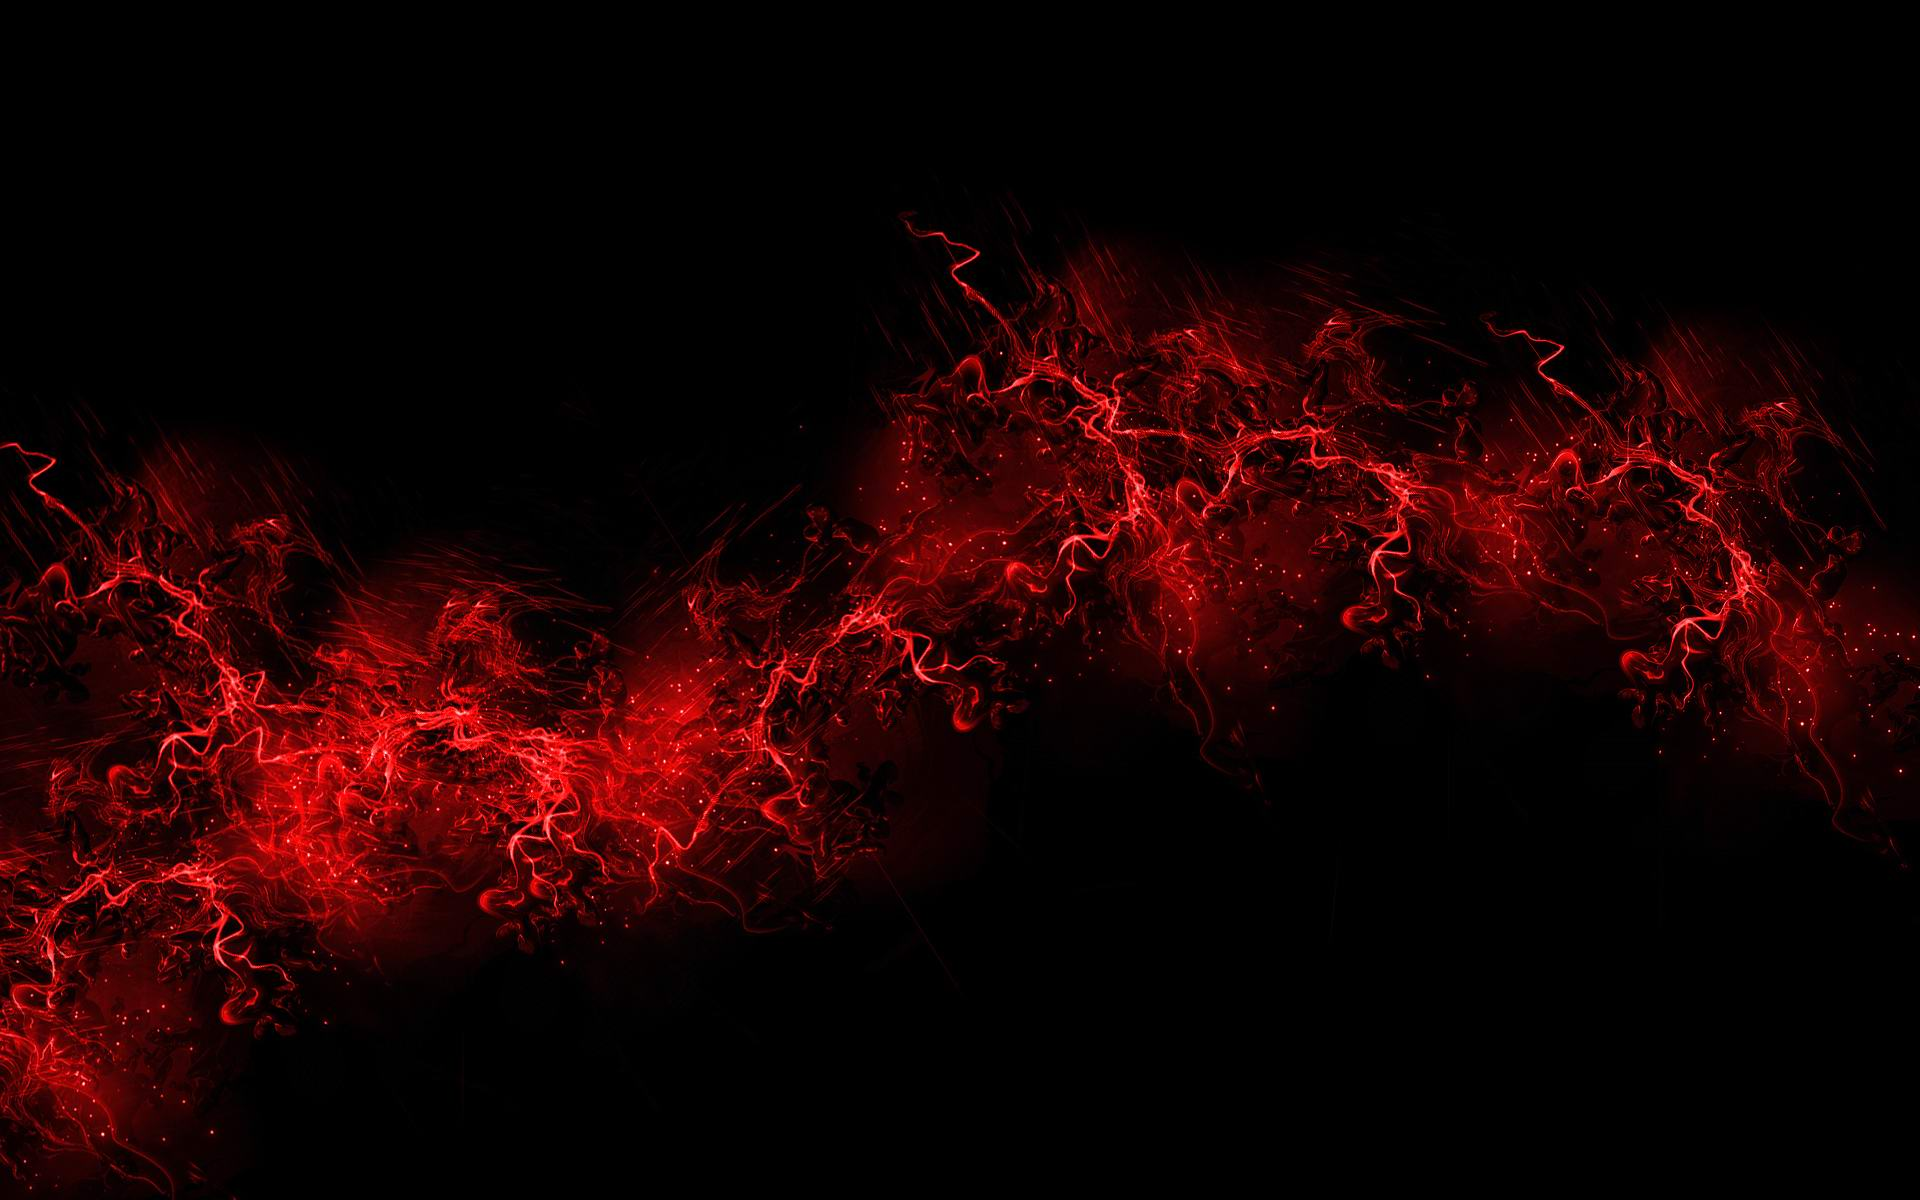 Red And Black Wallpaper For Computer 3 Desktop Background